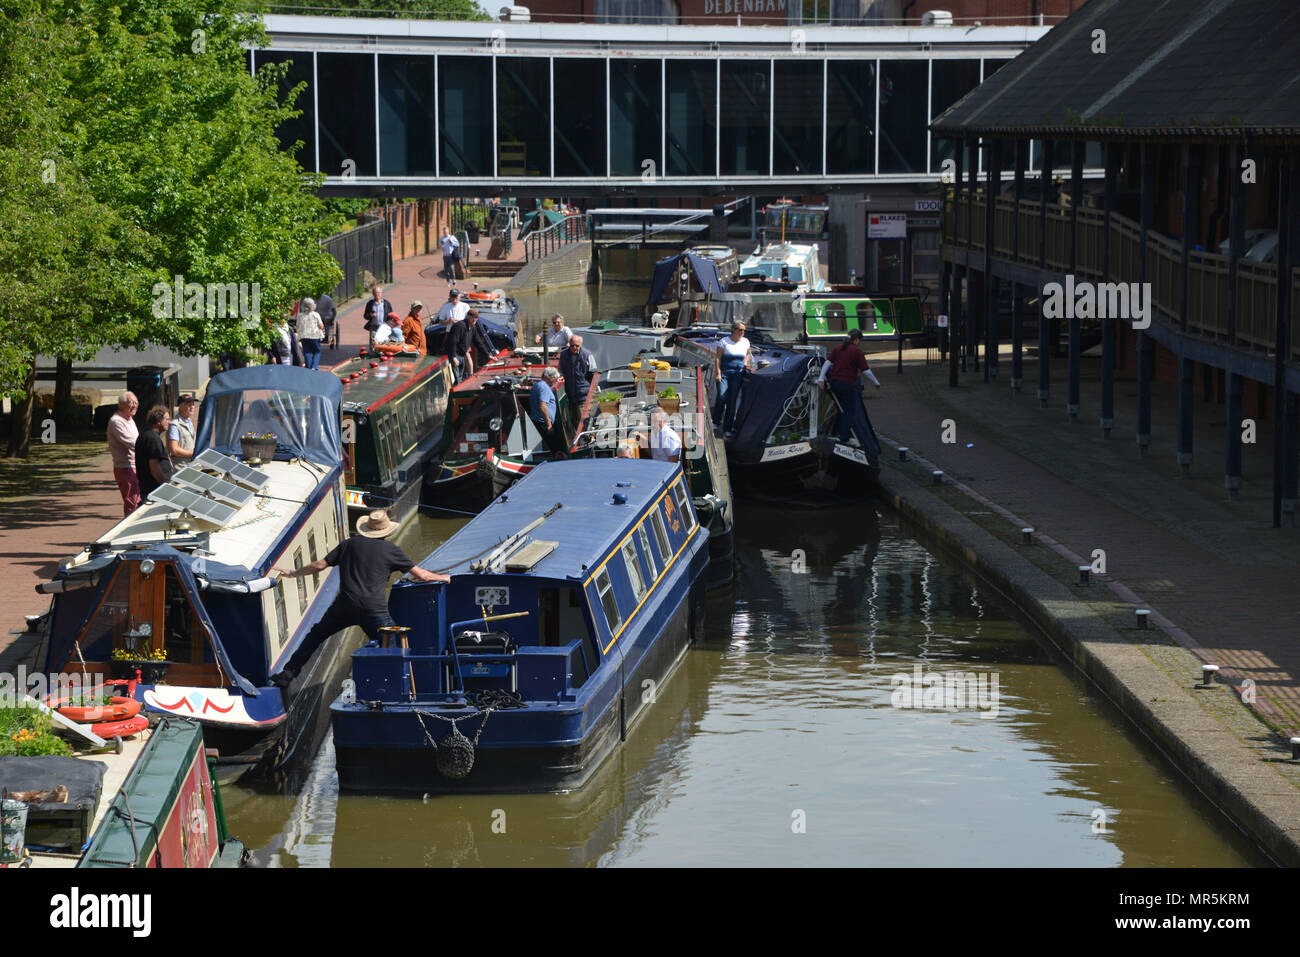 A traffic jam of narrowboats on the Oxford Canal outside Castle Quay Shopping Centre, Banbury, Oxfordshire. Efforts being made to separate the boats f - Stock Image